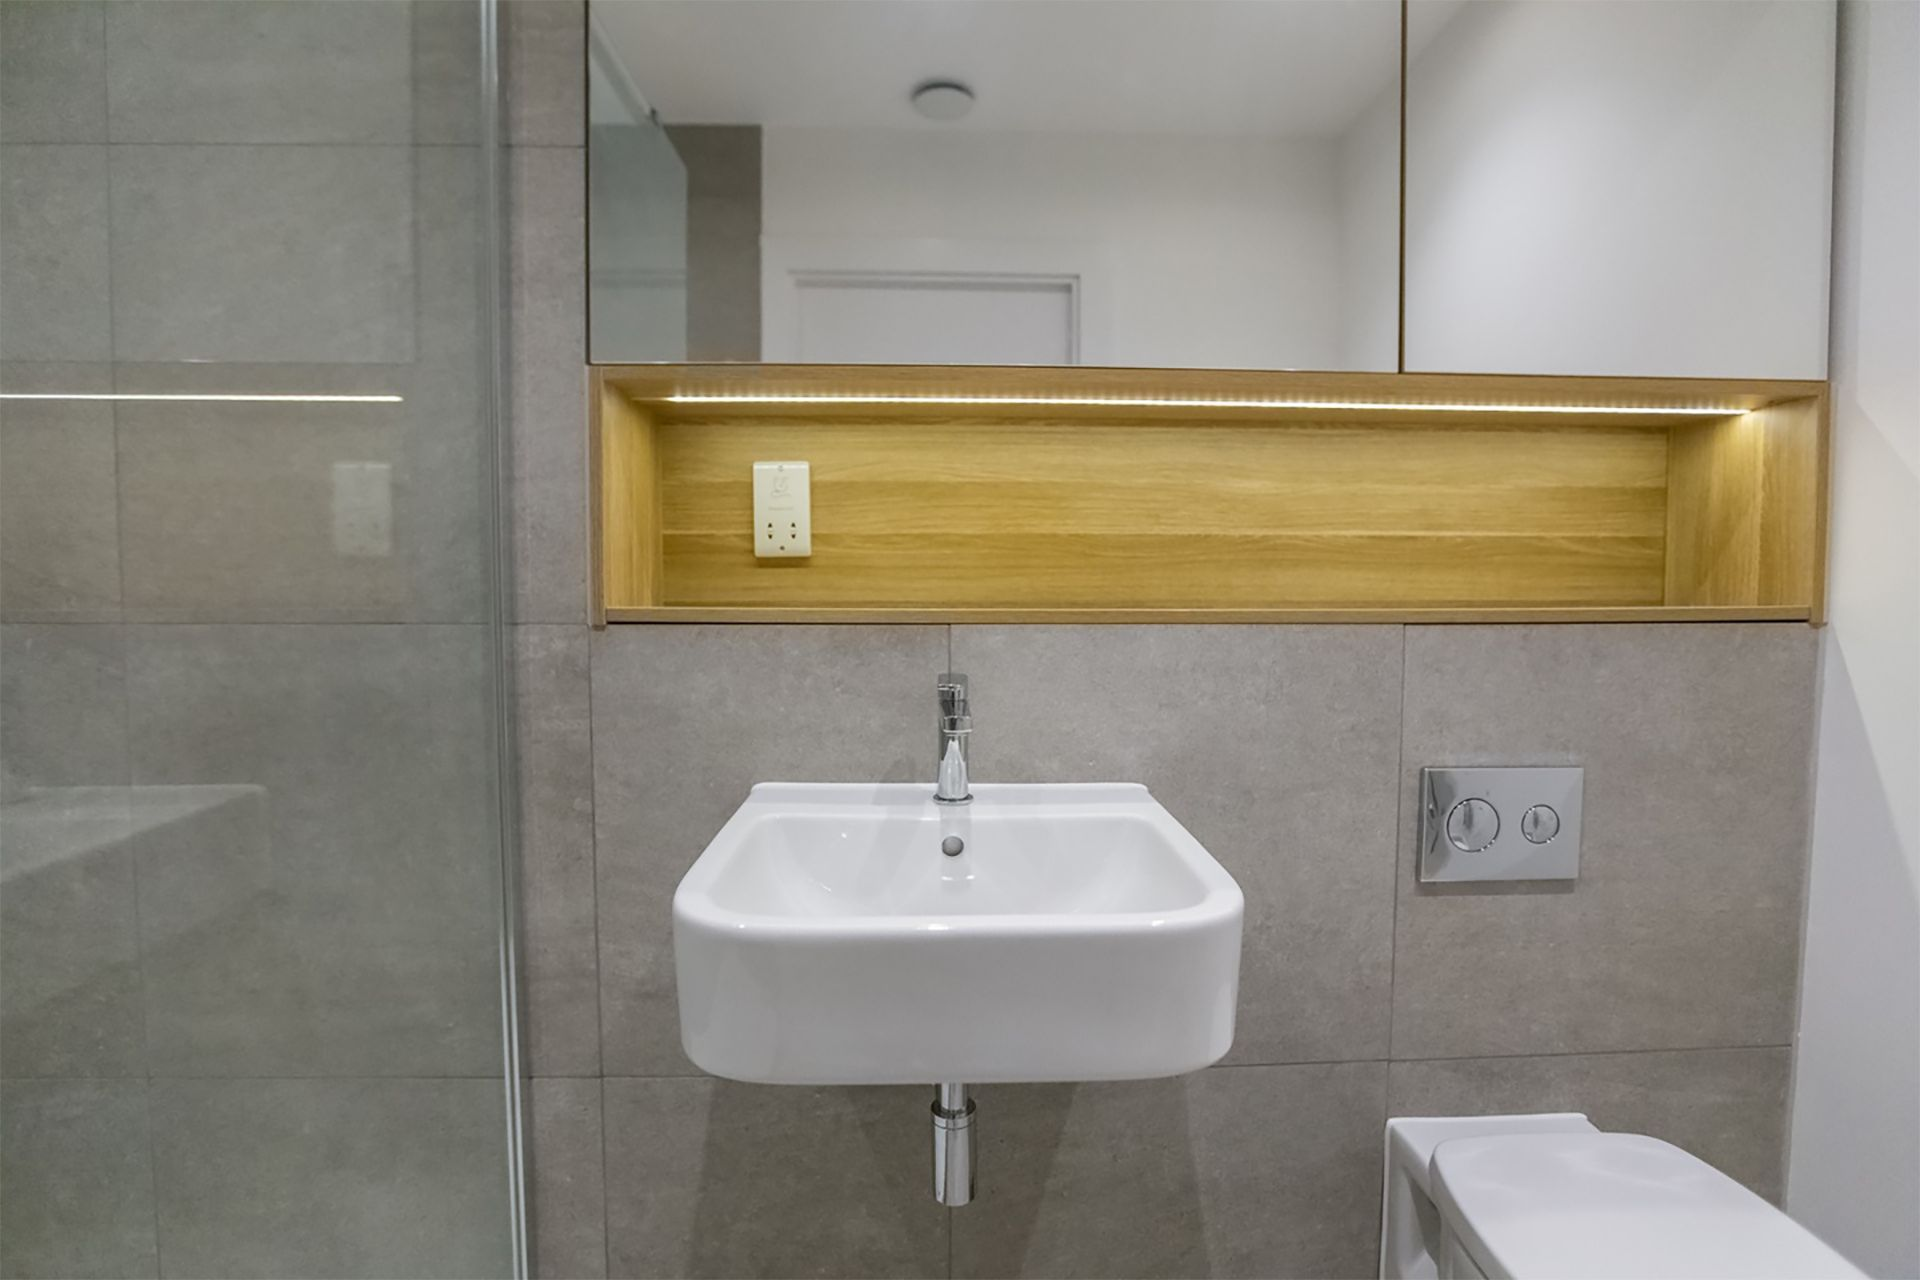 1 Bedroom apartment to rent in London HIL-HH-1102